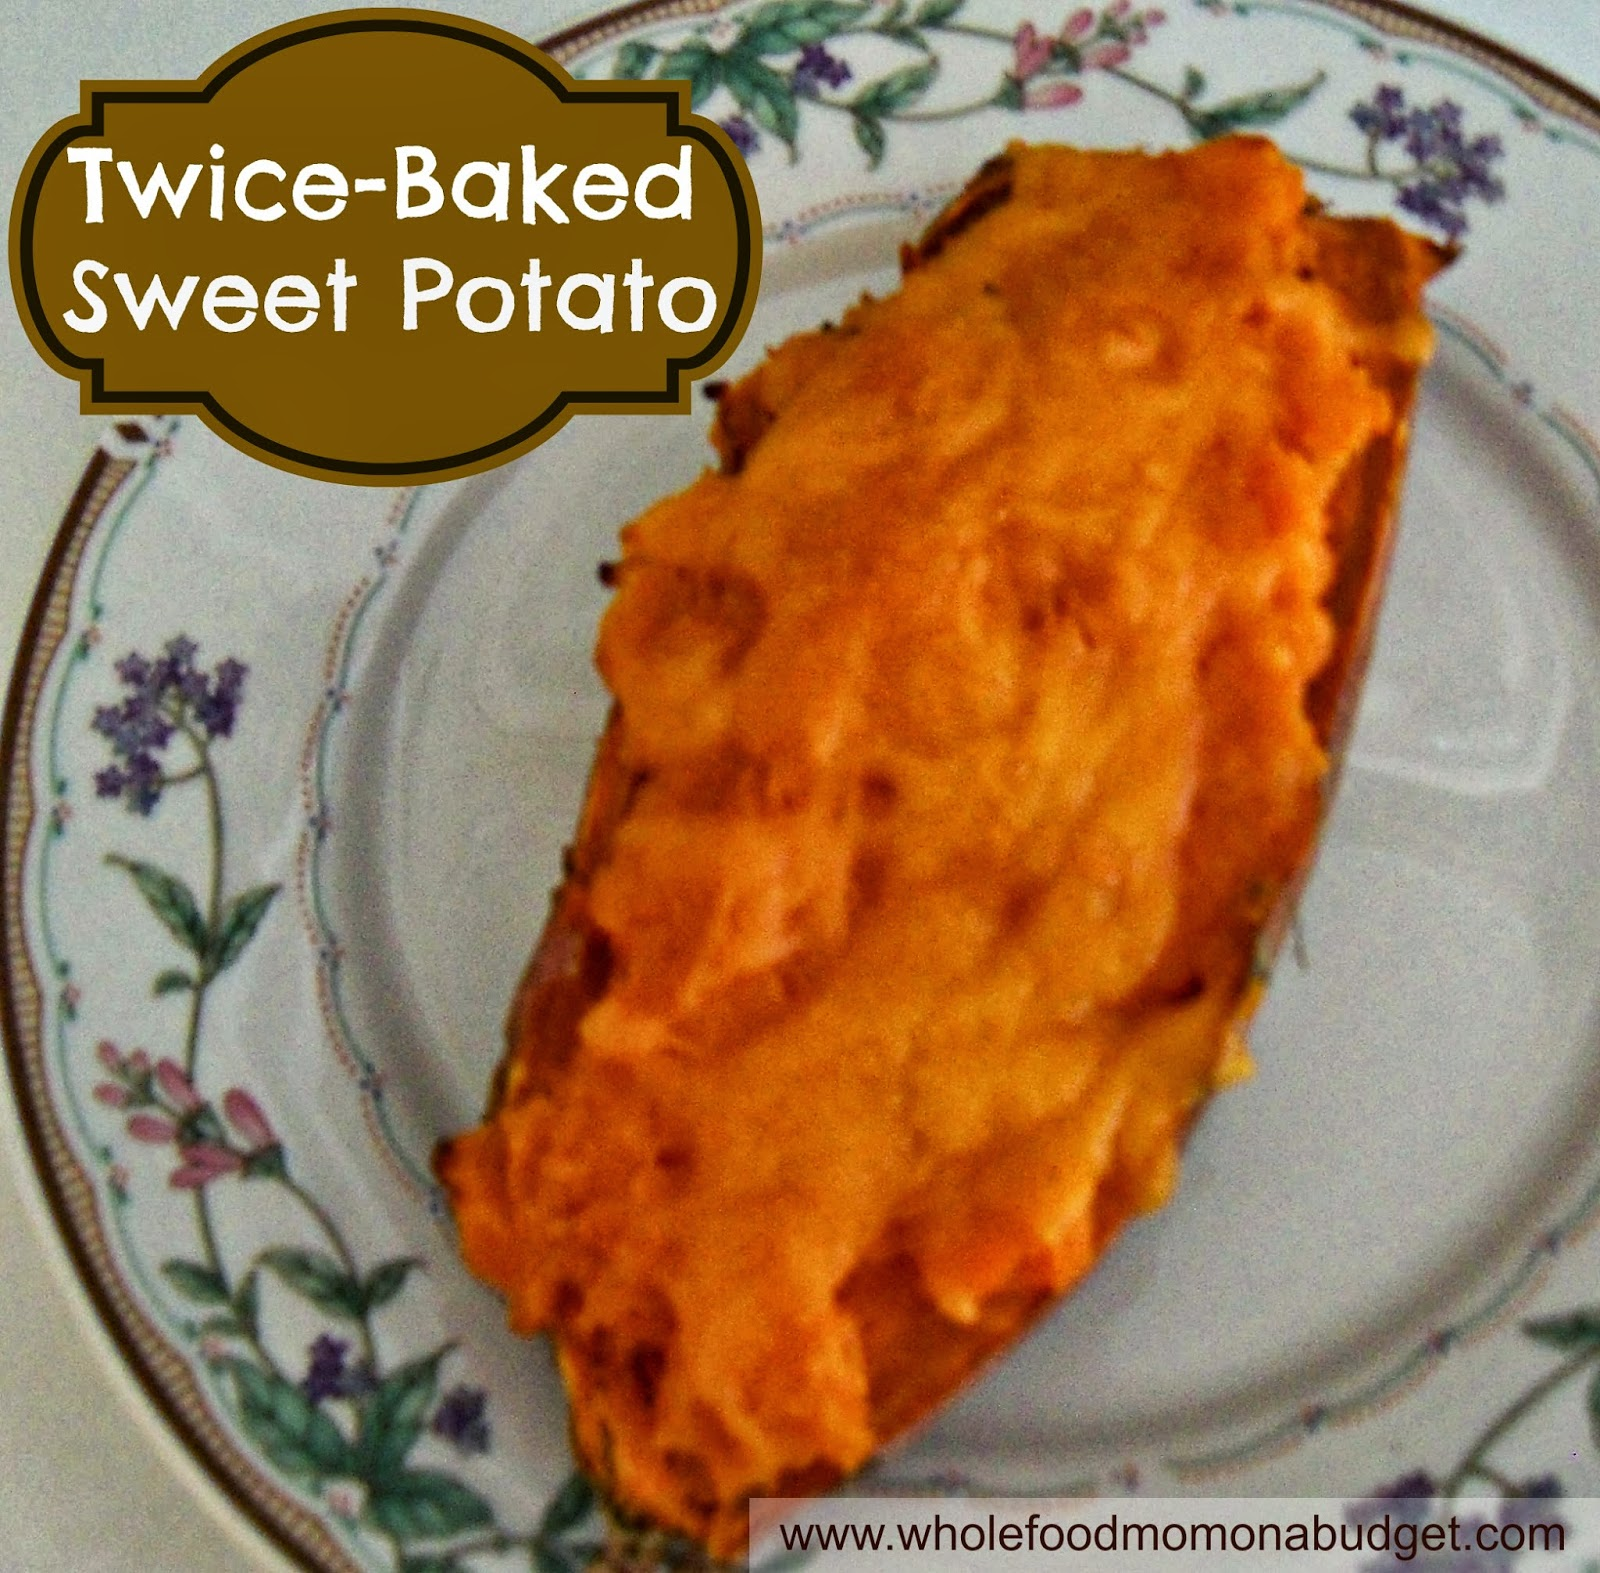 Chipotle Twice Baked Sweet Potatoes: Twice-Baked Sweet Potato Cups With Sour Cream, Chipotle